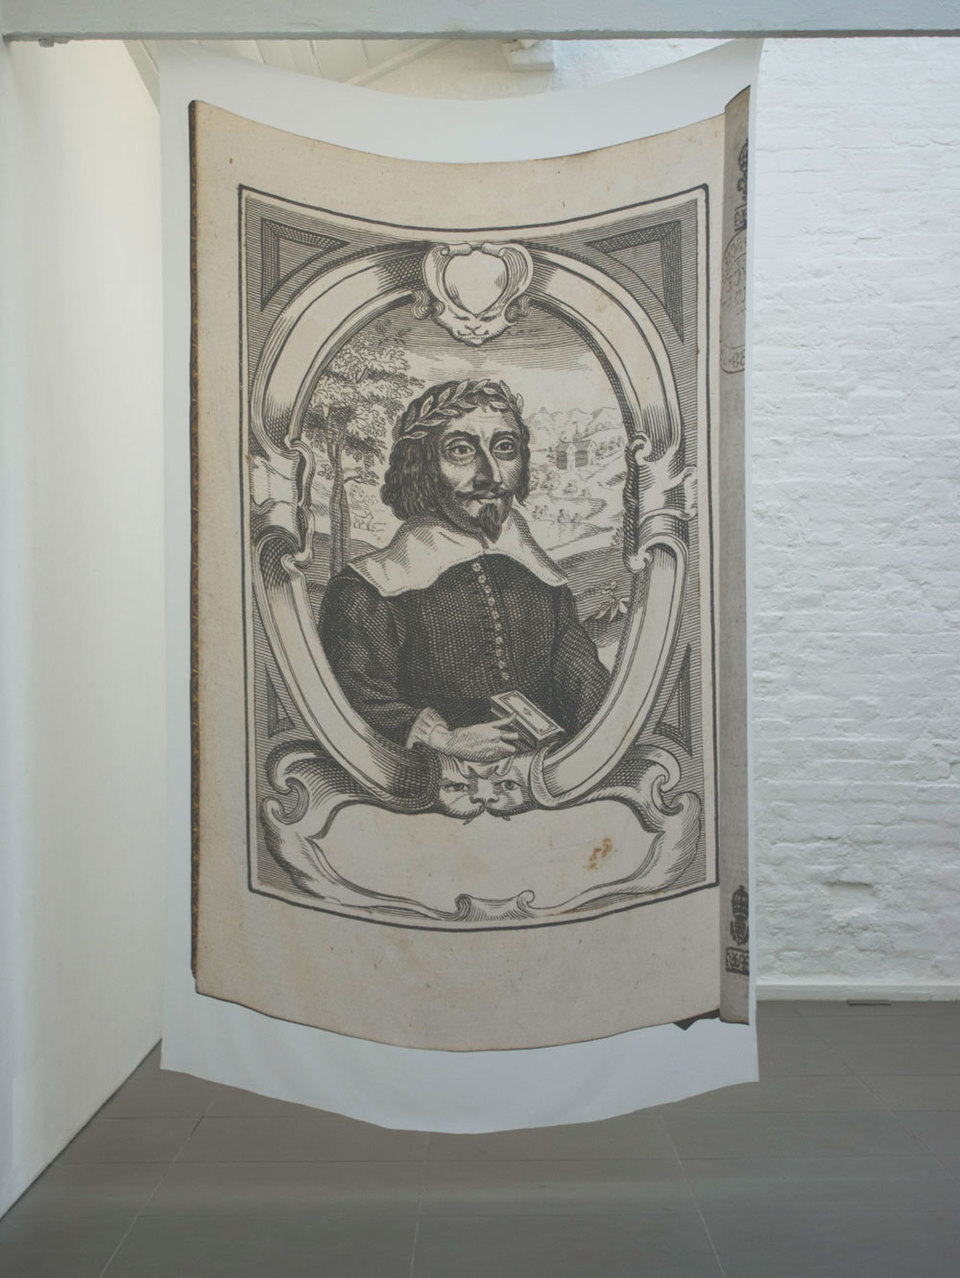 Una Knox, 'Are we not drawn onward, we few, drawn onward to new era?', 2011, digital print on silk, palindrome, 1 of a series of 3, (130 x 220 cm), Cell Project Space